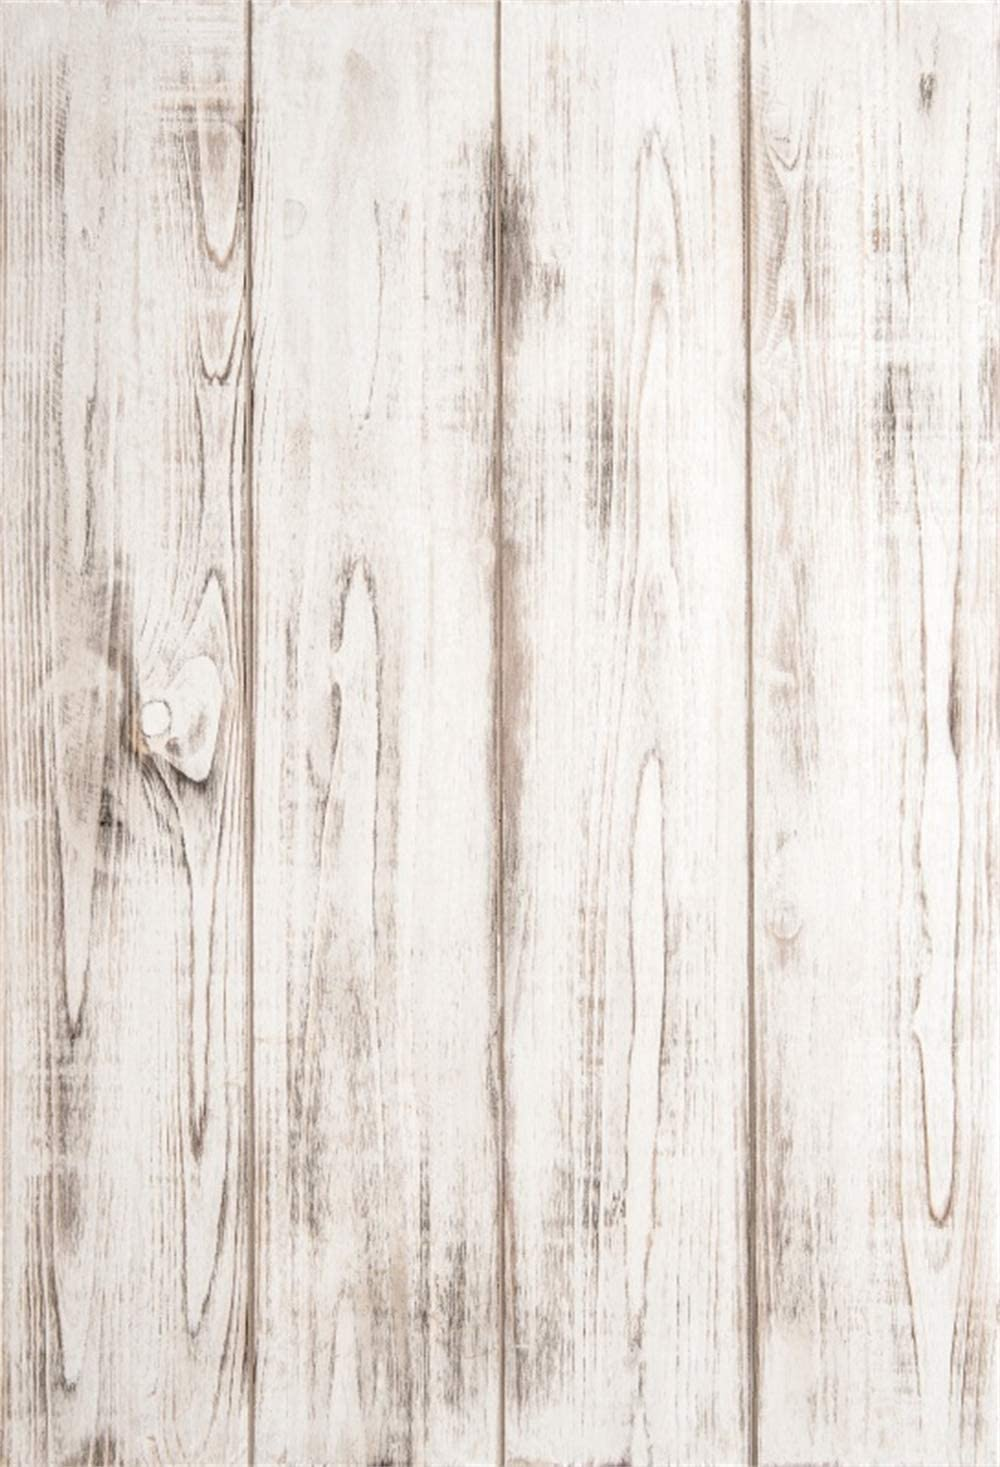 Vinyl 10x8ft Weathered Peeling Lateral-Cut Wood Plank Photography Background Faded Grunge Wood Texture Old Board Backdrops Personal Portraits Shooting Artistic Photo Studio Props